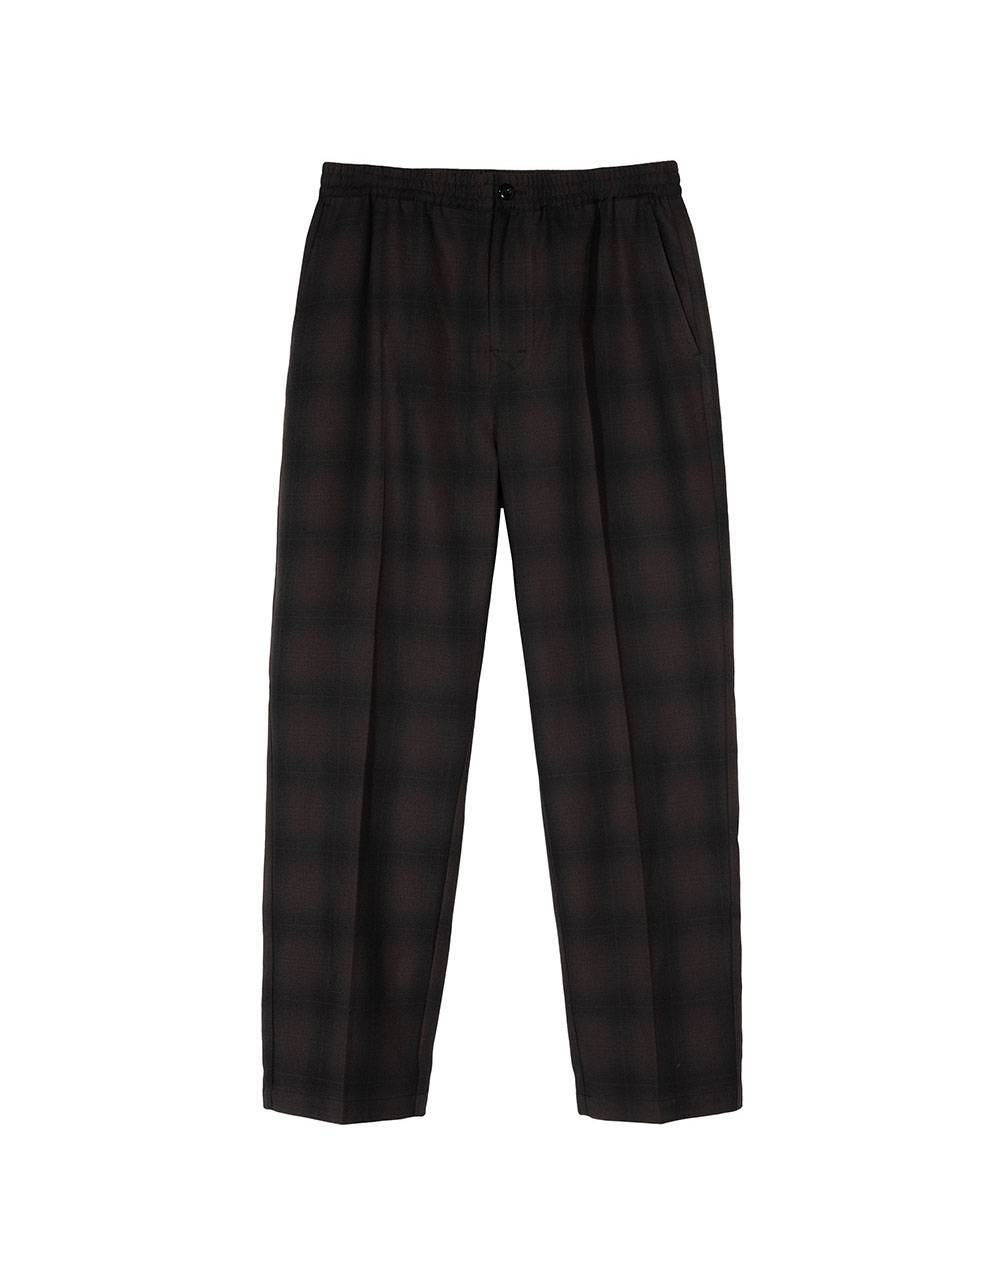 Stussy shadow plaid bryan pants - grey plaid Stussy Pant 122,13 €